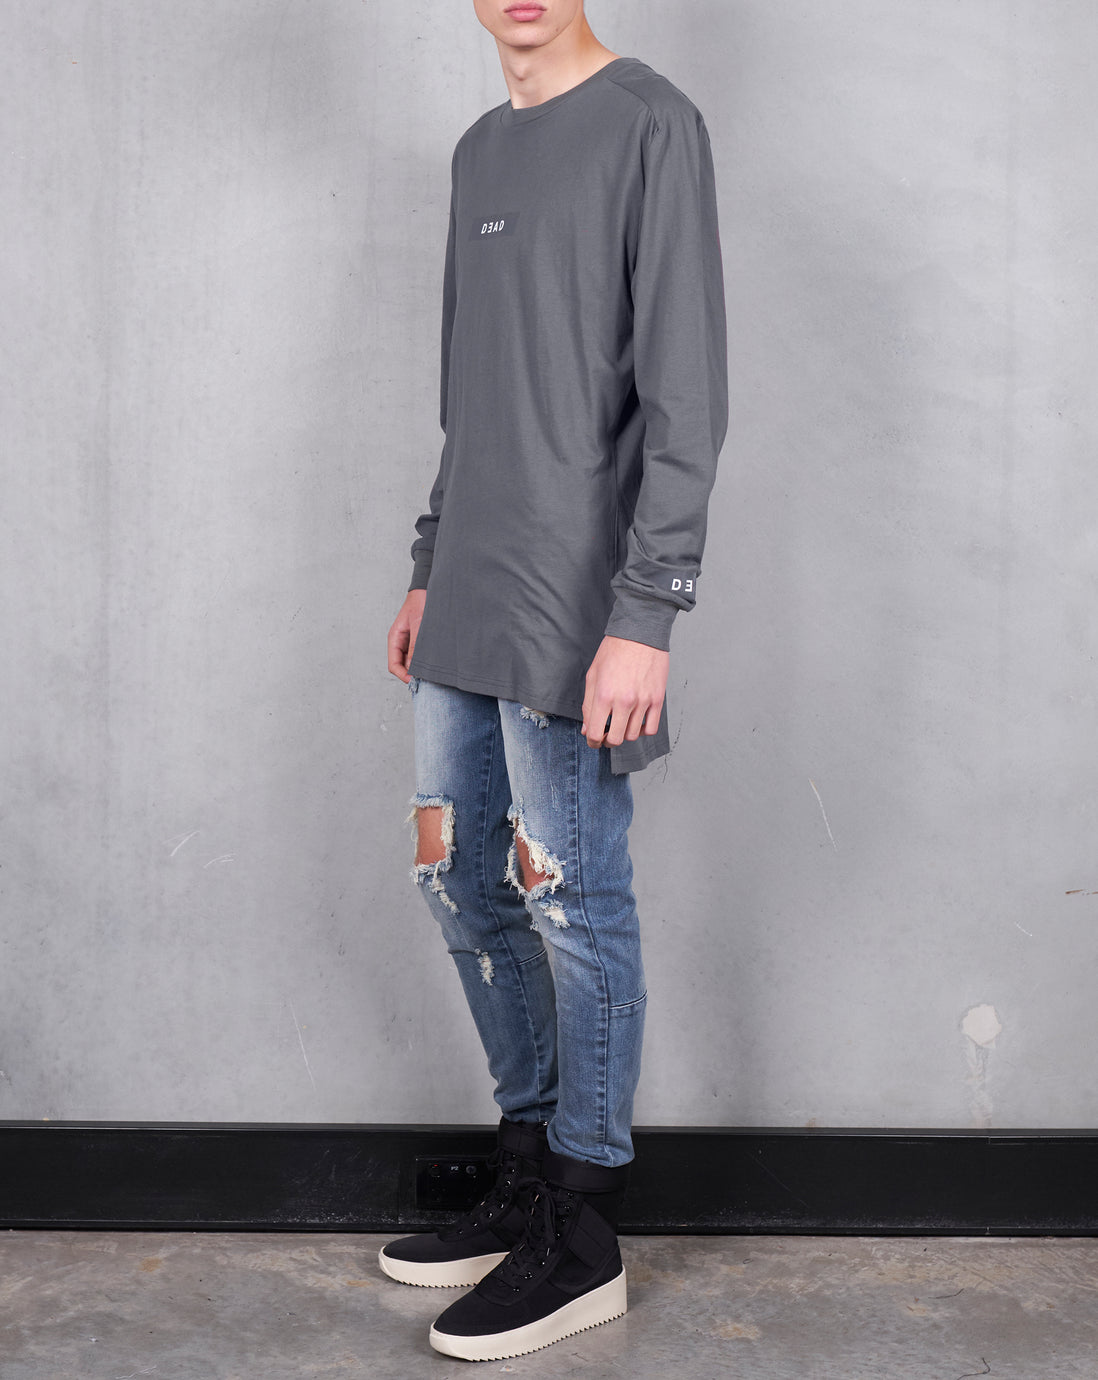 STEPPED BOX LOGO LONG SLEEVE TEE - ASH